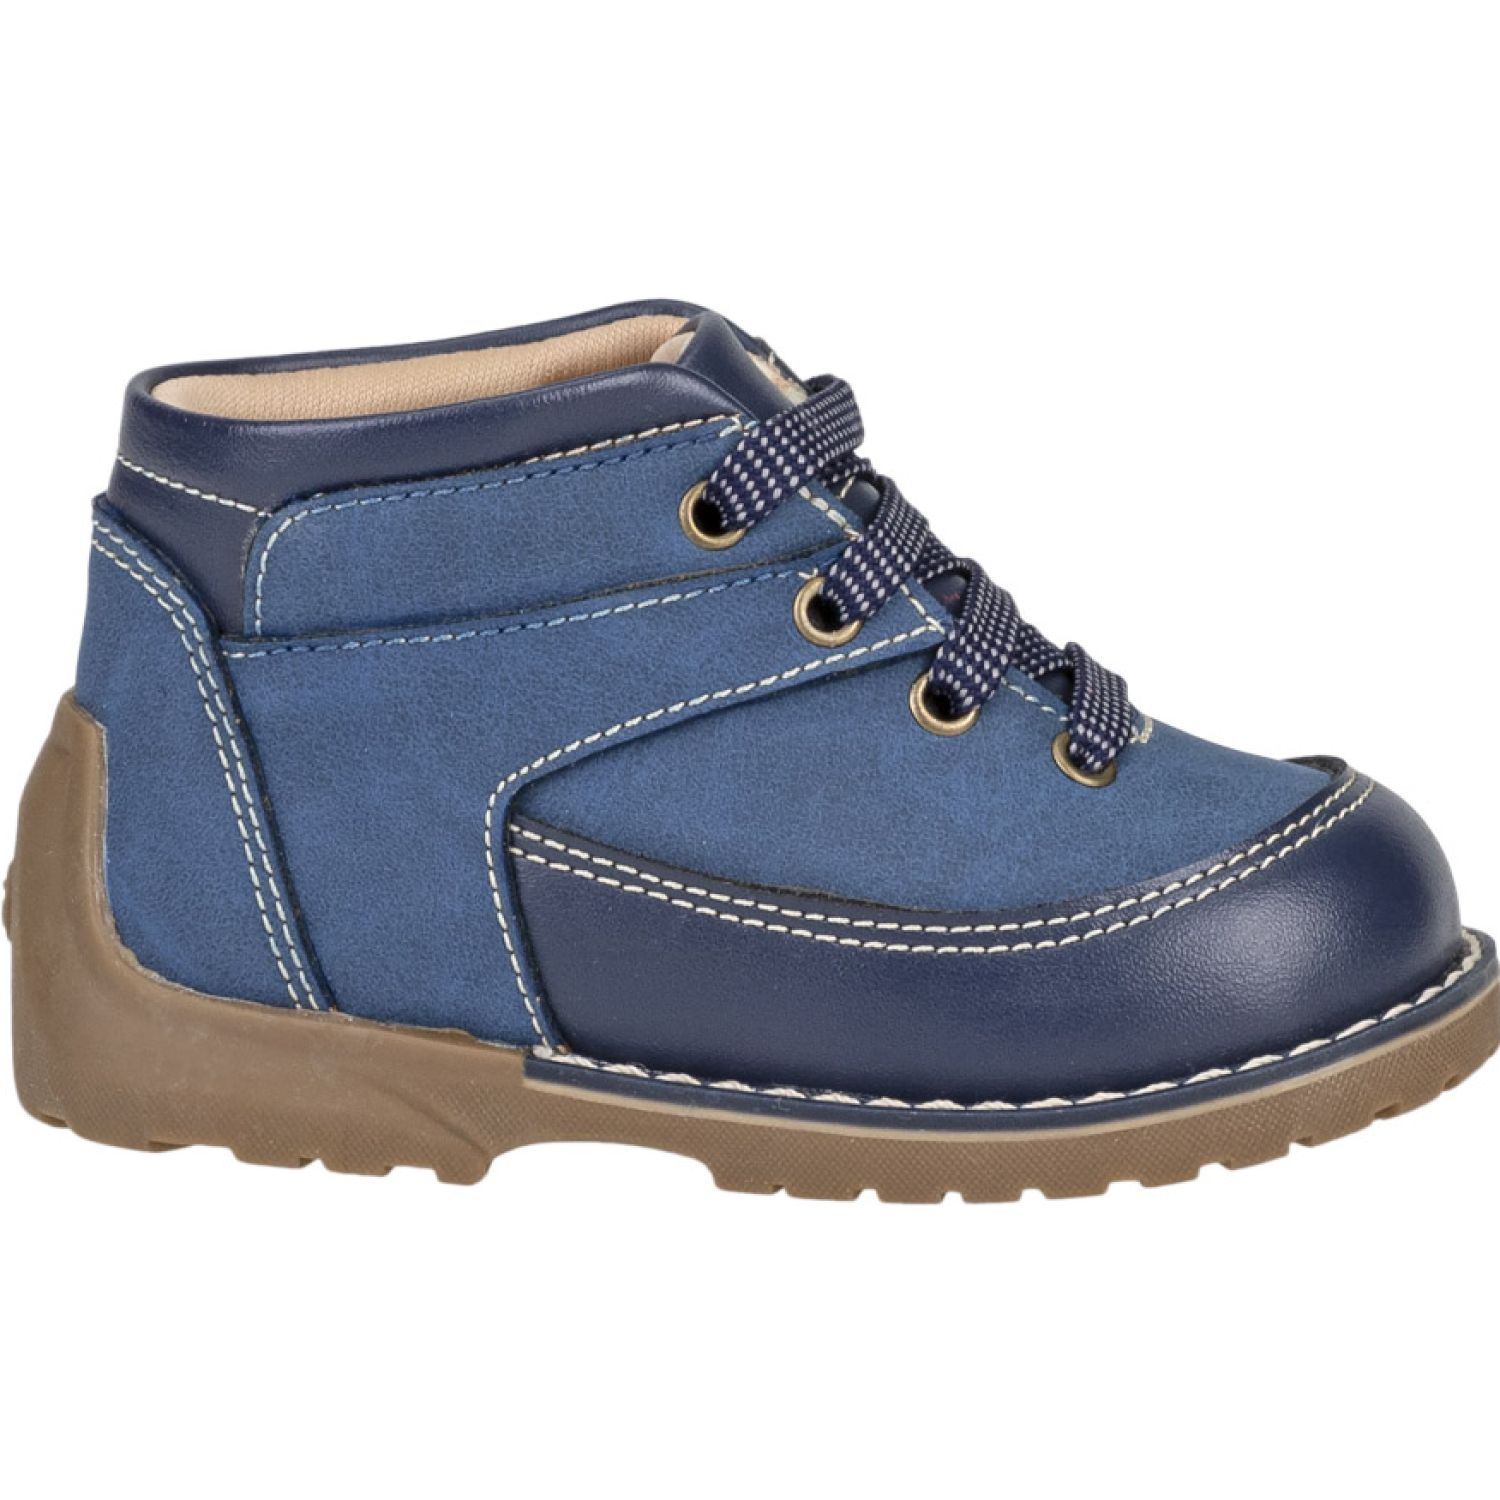 FOOTLOOSE Fpb-04i20 AZUL Botas